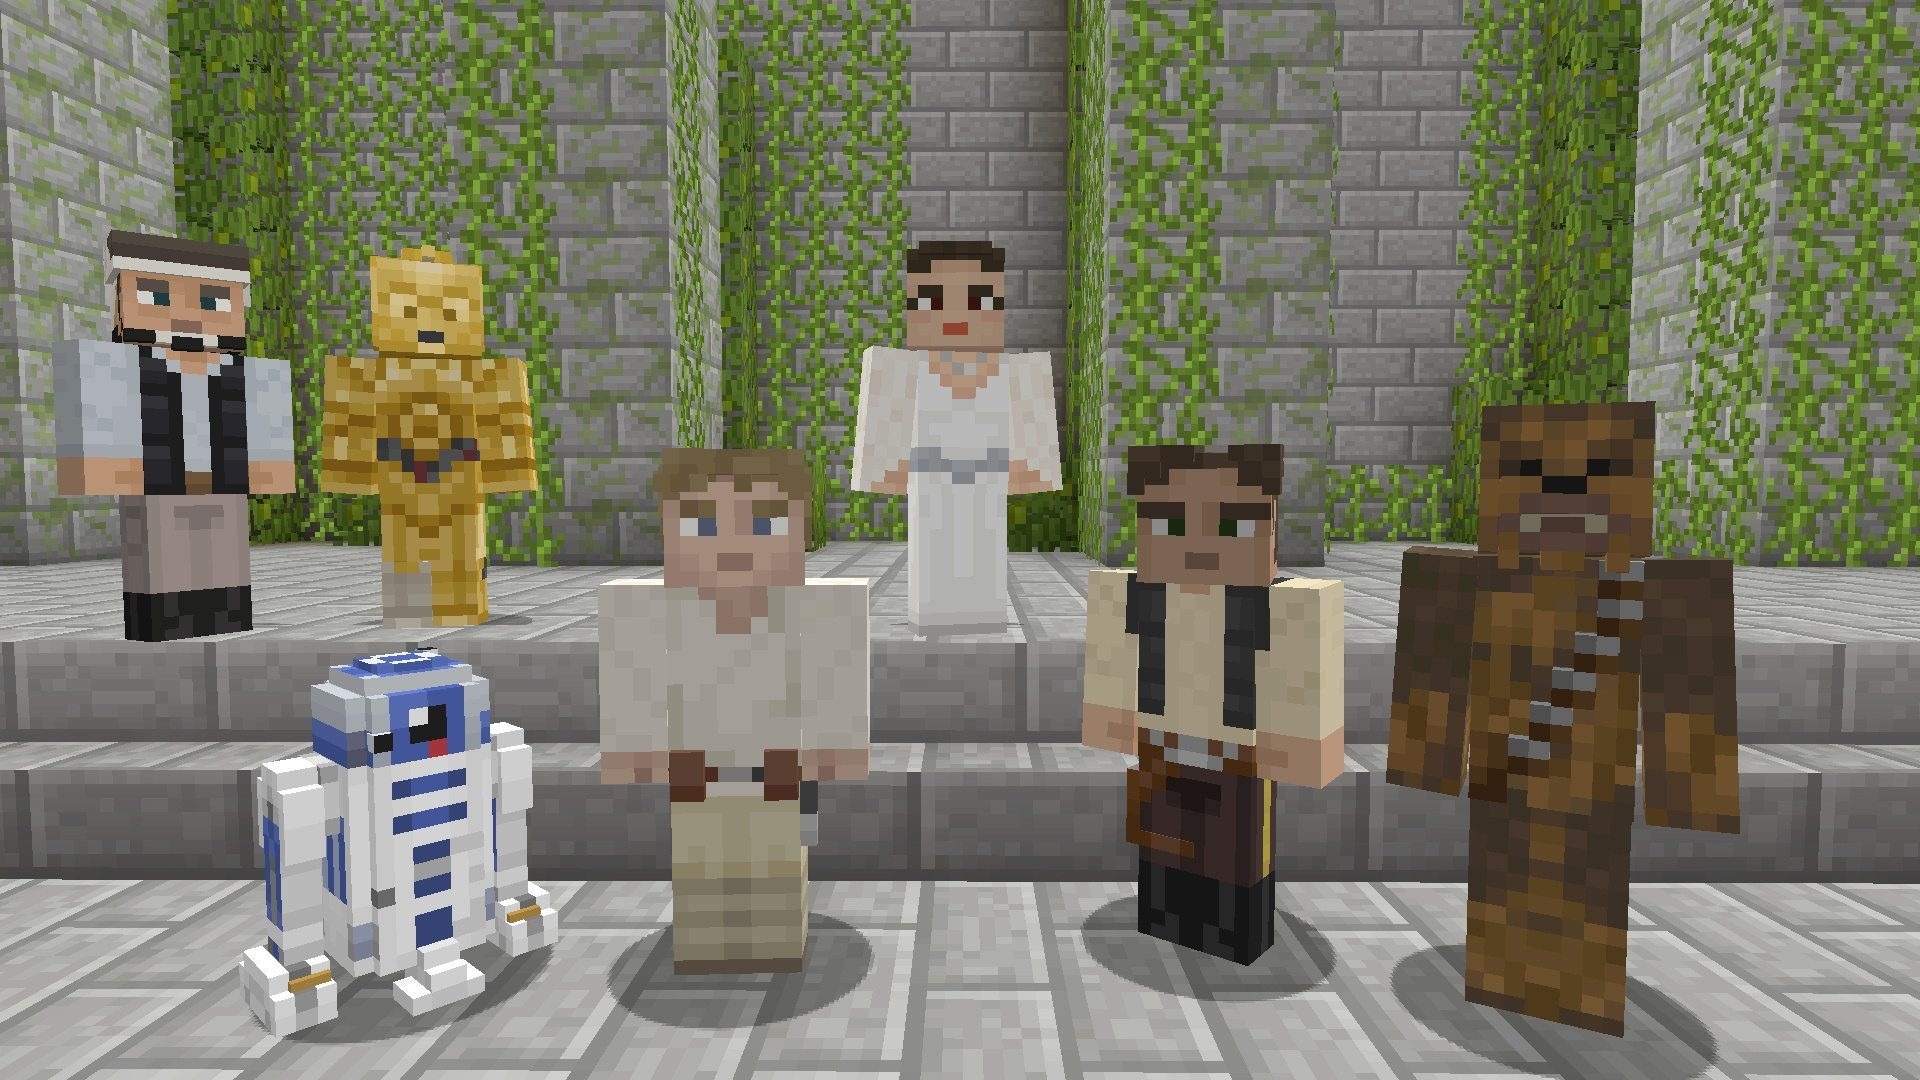 minecraft xbox 360 star wars texture pack Gaming Cypher